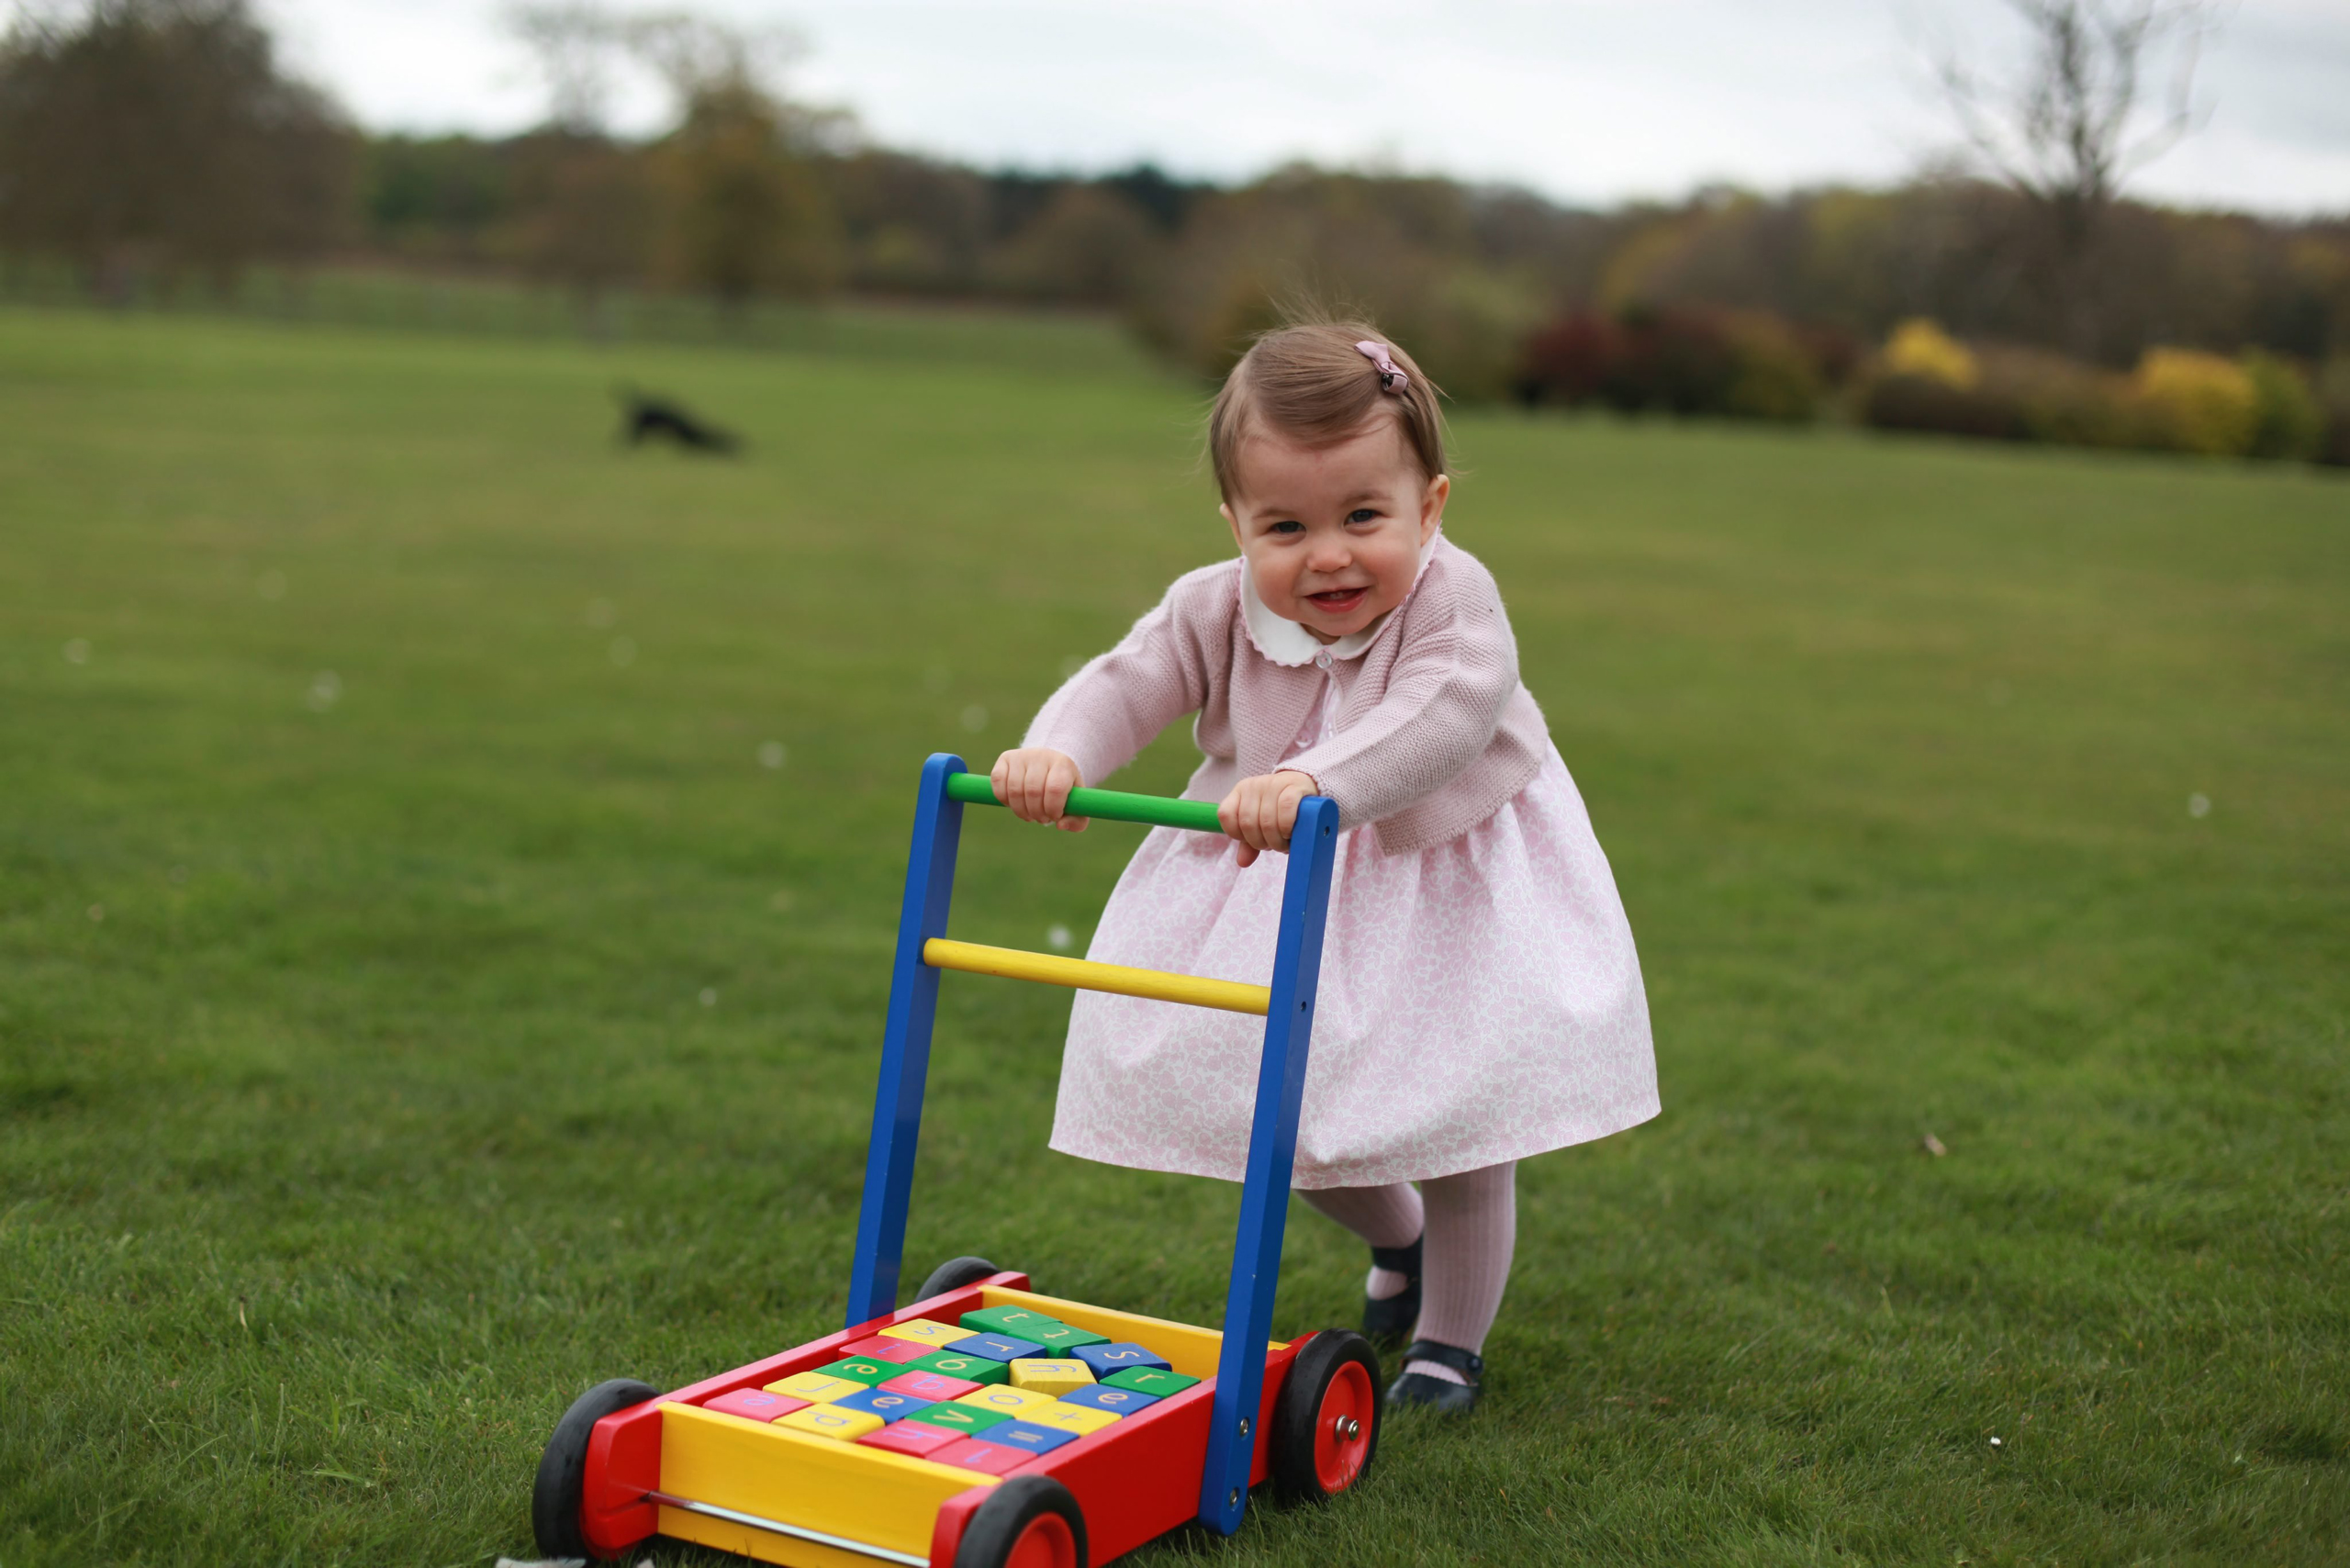 Princess Charlotte at the garden of Anmer Hall in Norfolk, U.K., in a photo made available by the Duke and Duchess of Cambridge on May 1, 2016.